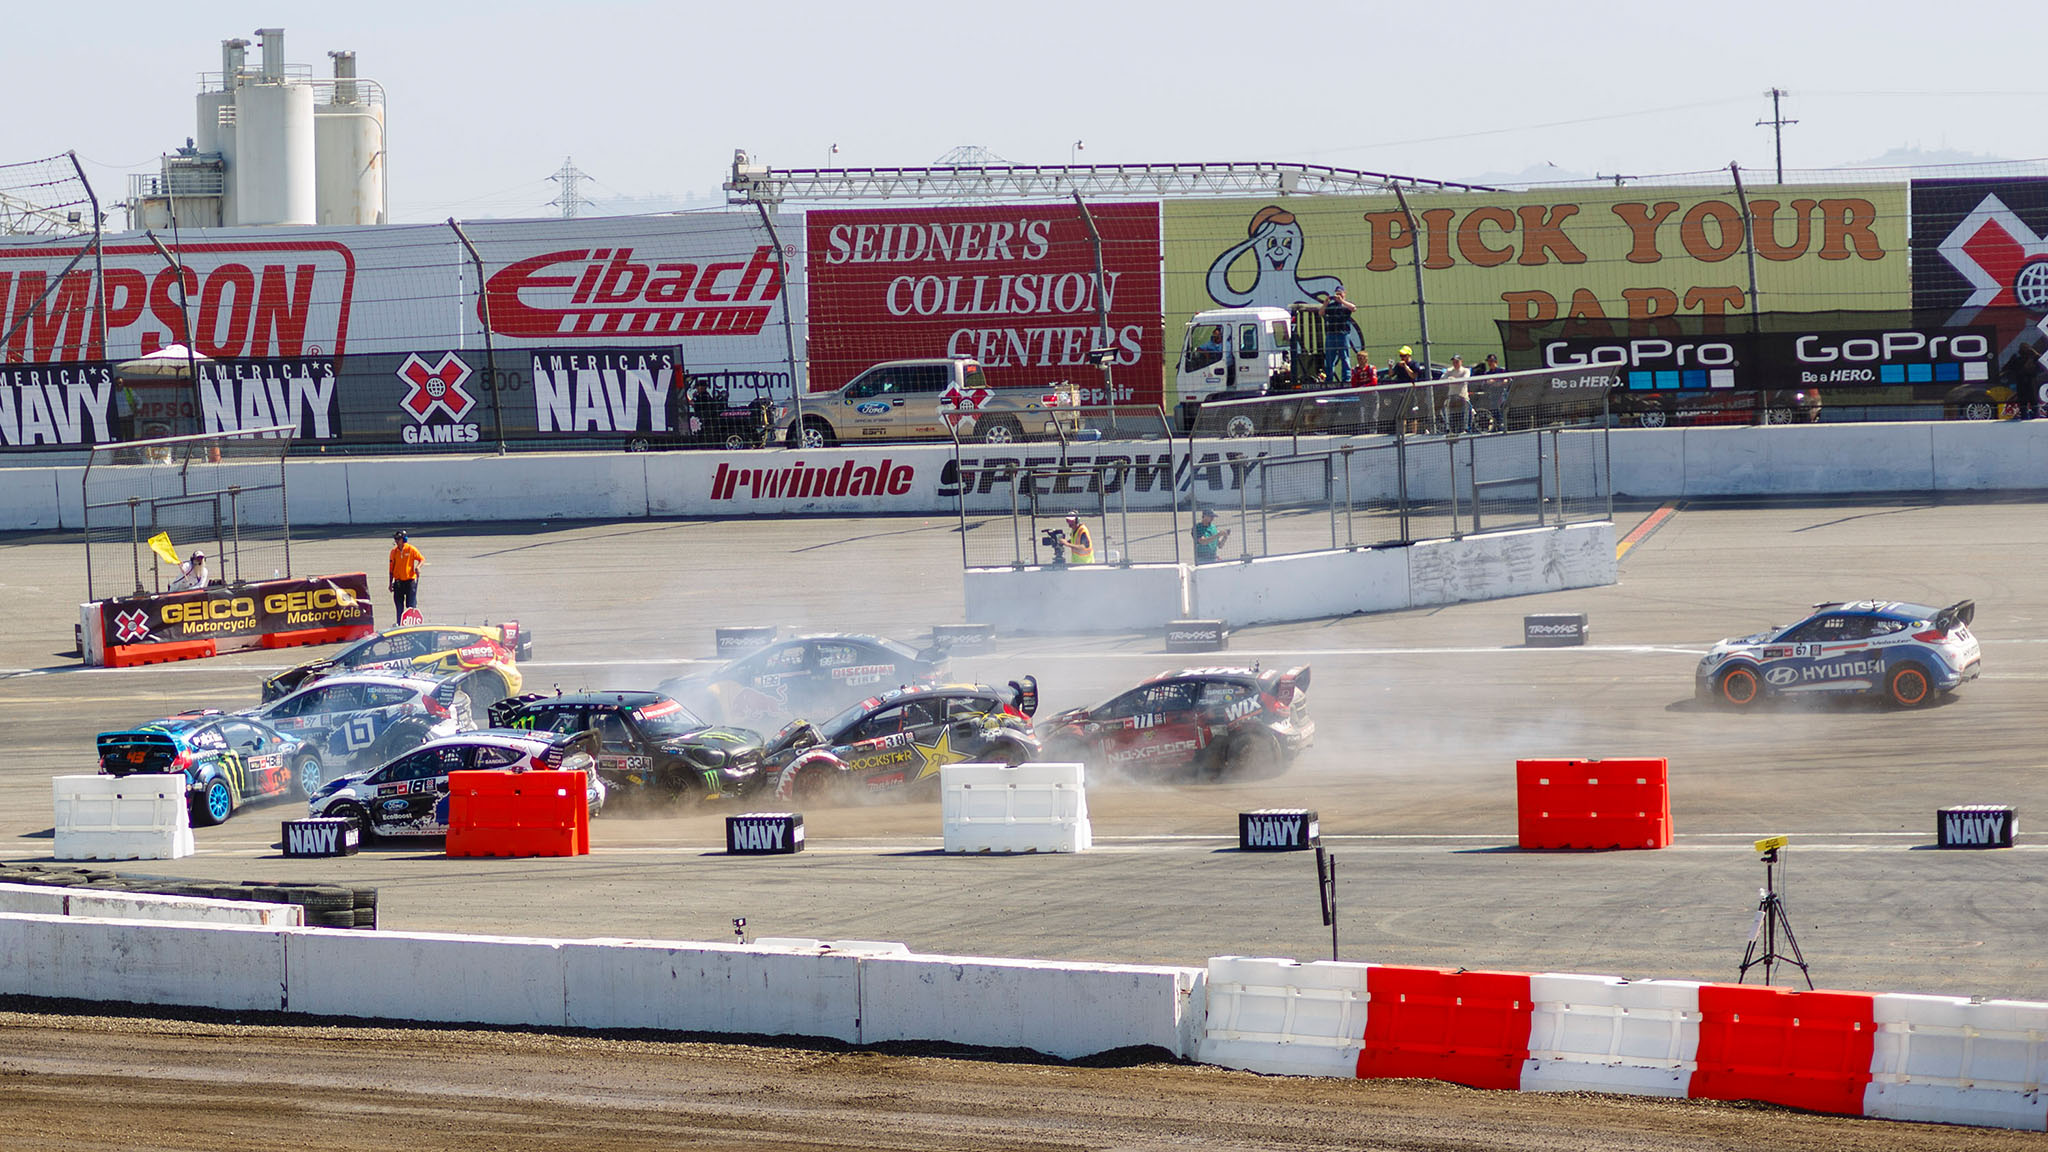 The crash in the first hairpin turn on the first lap of the final Ford RallyCross race took out three of the race favorites: Liam Doran, Ken Block and Brian Deegan. Block and Deegan went on to finish sixth and seventh, respectively. Doran didn't finish the race.